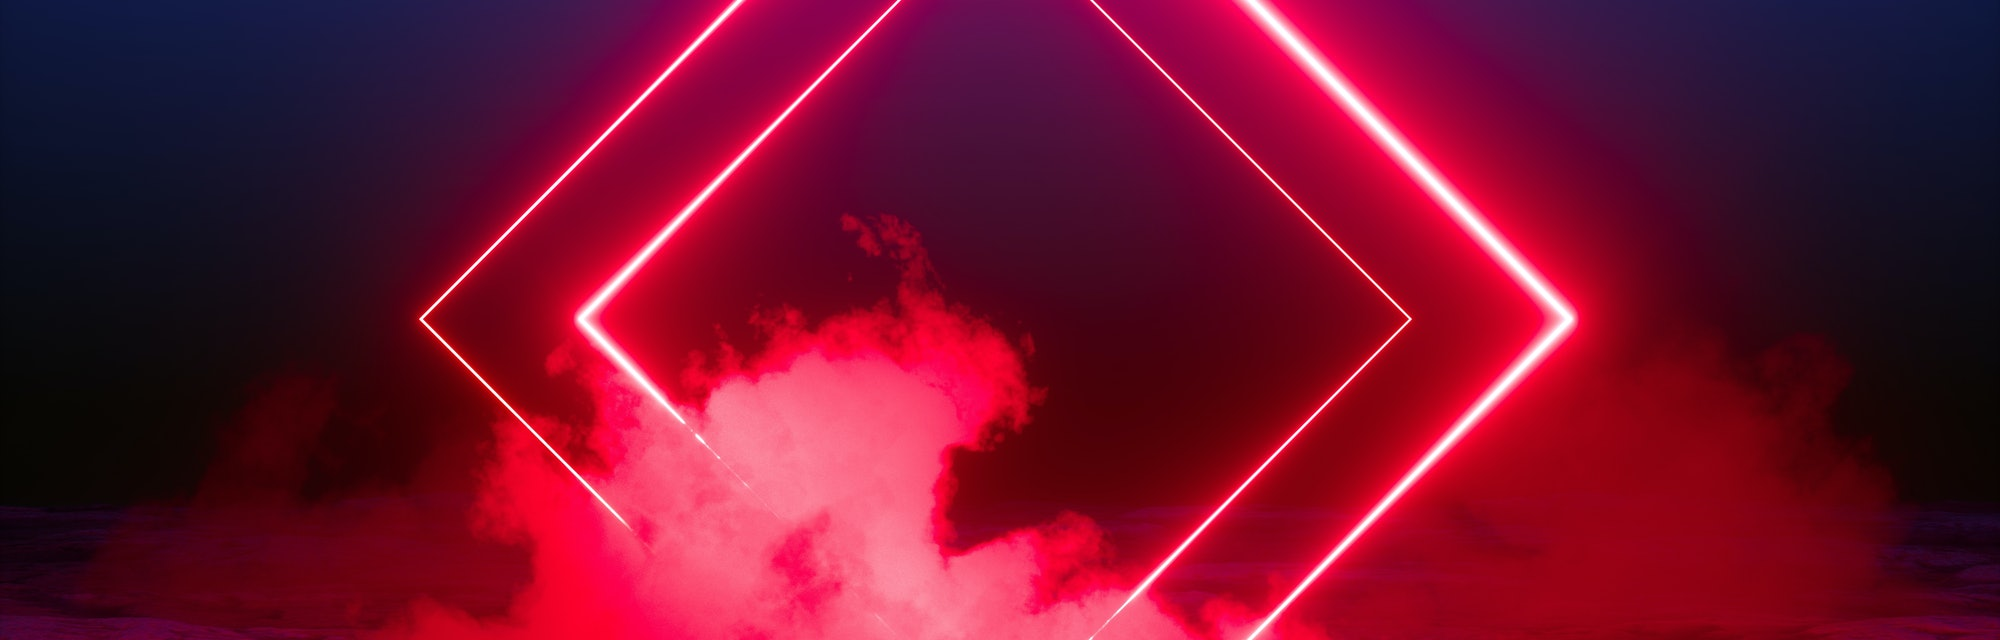 3d render, abstract background, square portal, red neon lights, virtual reality, glowing lines, pink...